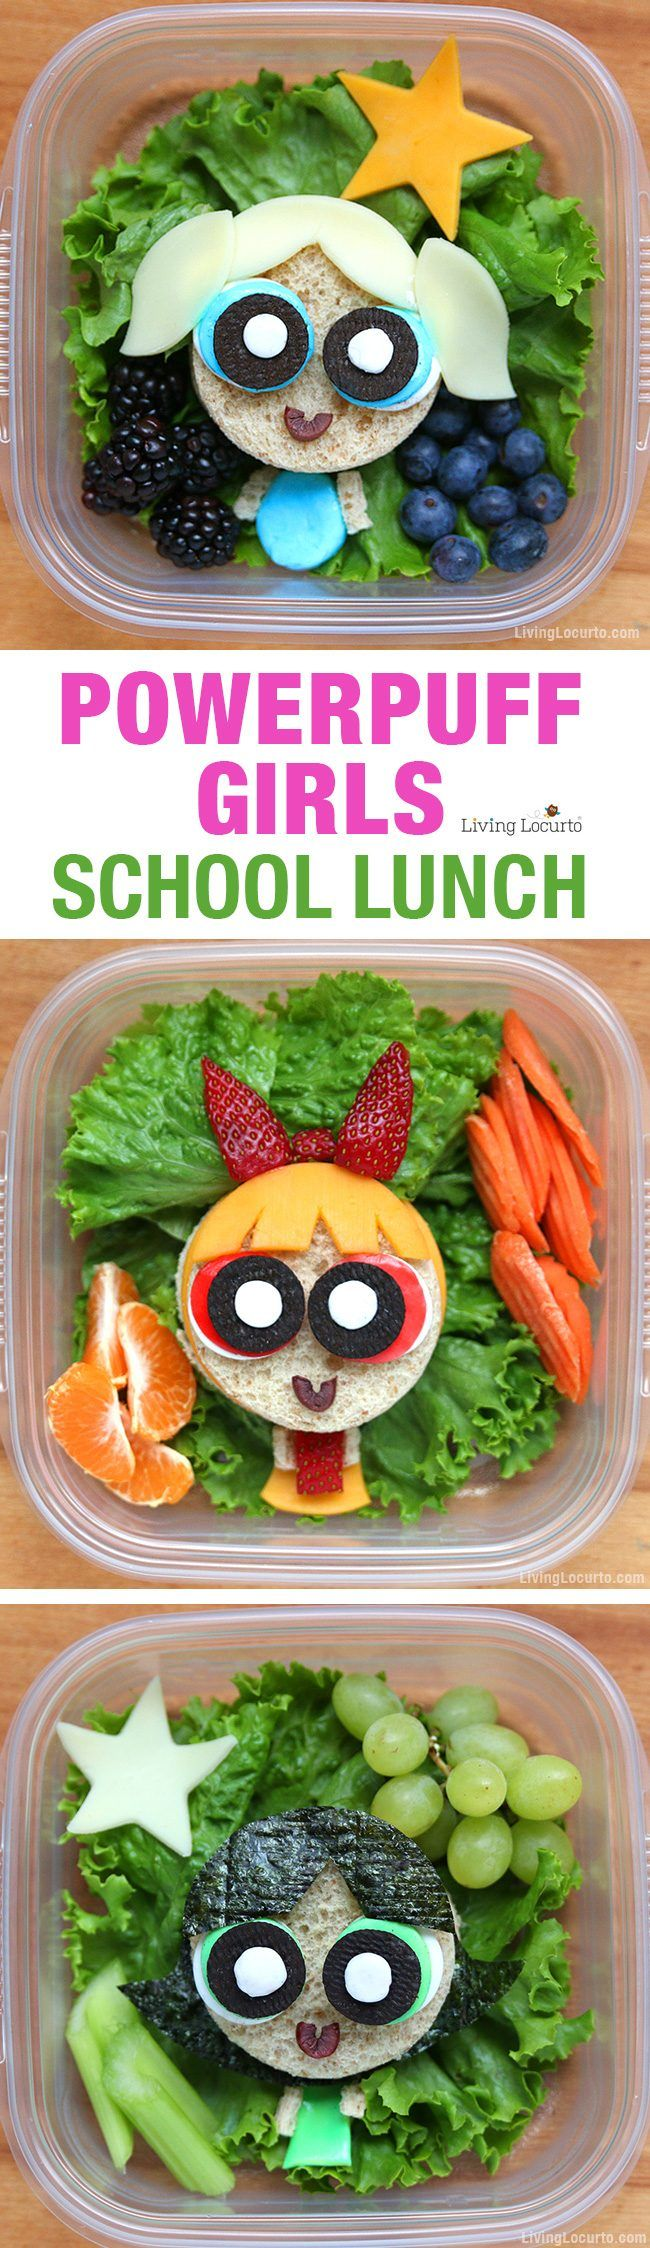 These Powerpuff Girls sandwiches are a cute superhero school lunch! Make sandwich art for kids that's full of sugar, spice, and everything nice. Find directions on how to make these adorable sandwiches and stream the classic series only on Hulu now. #PowerpuffonHulu #ad